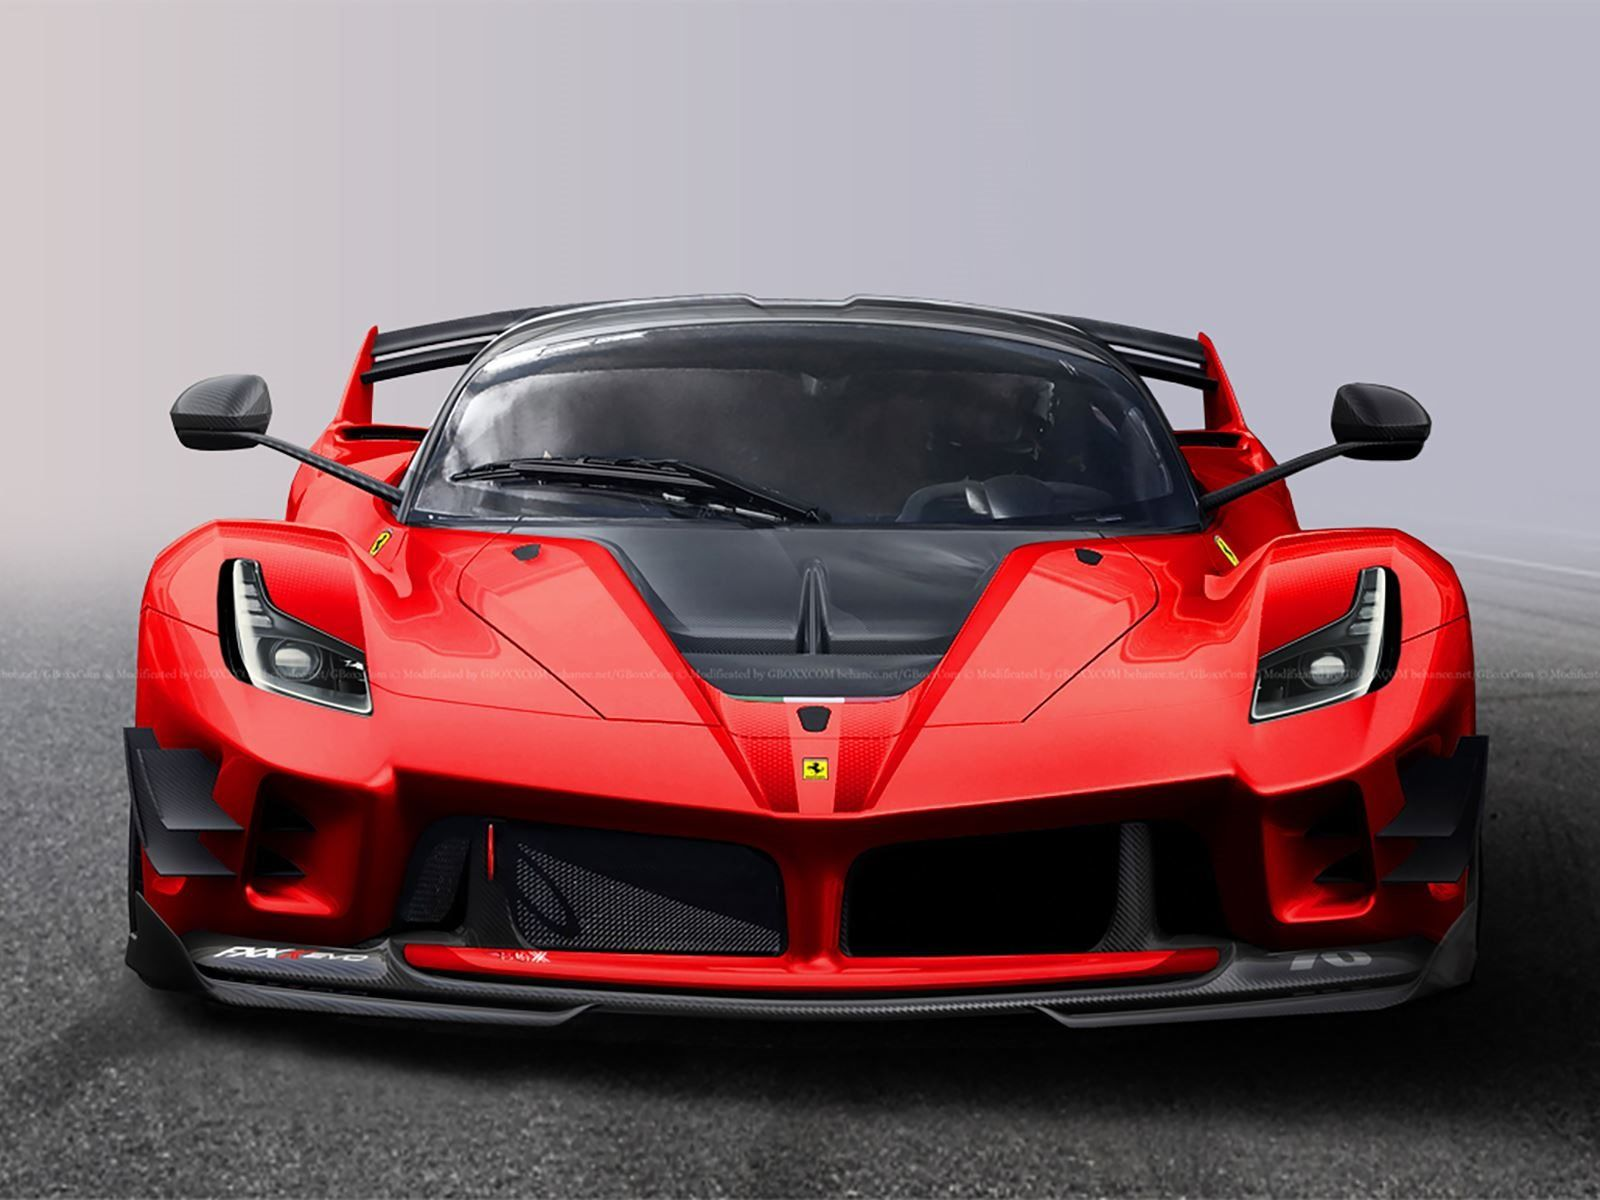 Ferrari Fxxk Evo Wallpapers Top Free Ferrari Fxxk Evo Backgrounds Wallpaperaccess